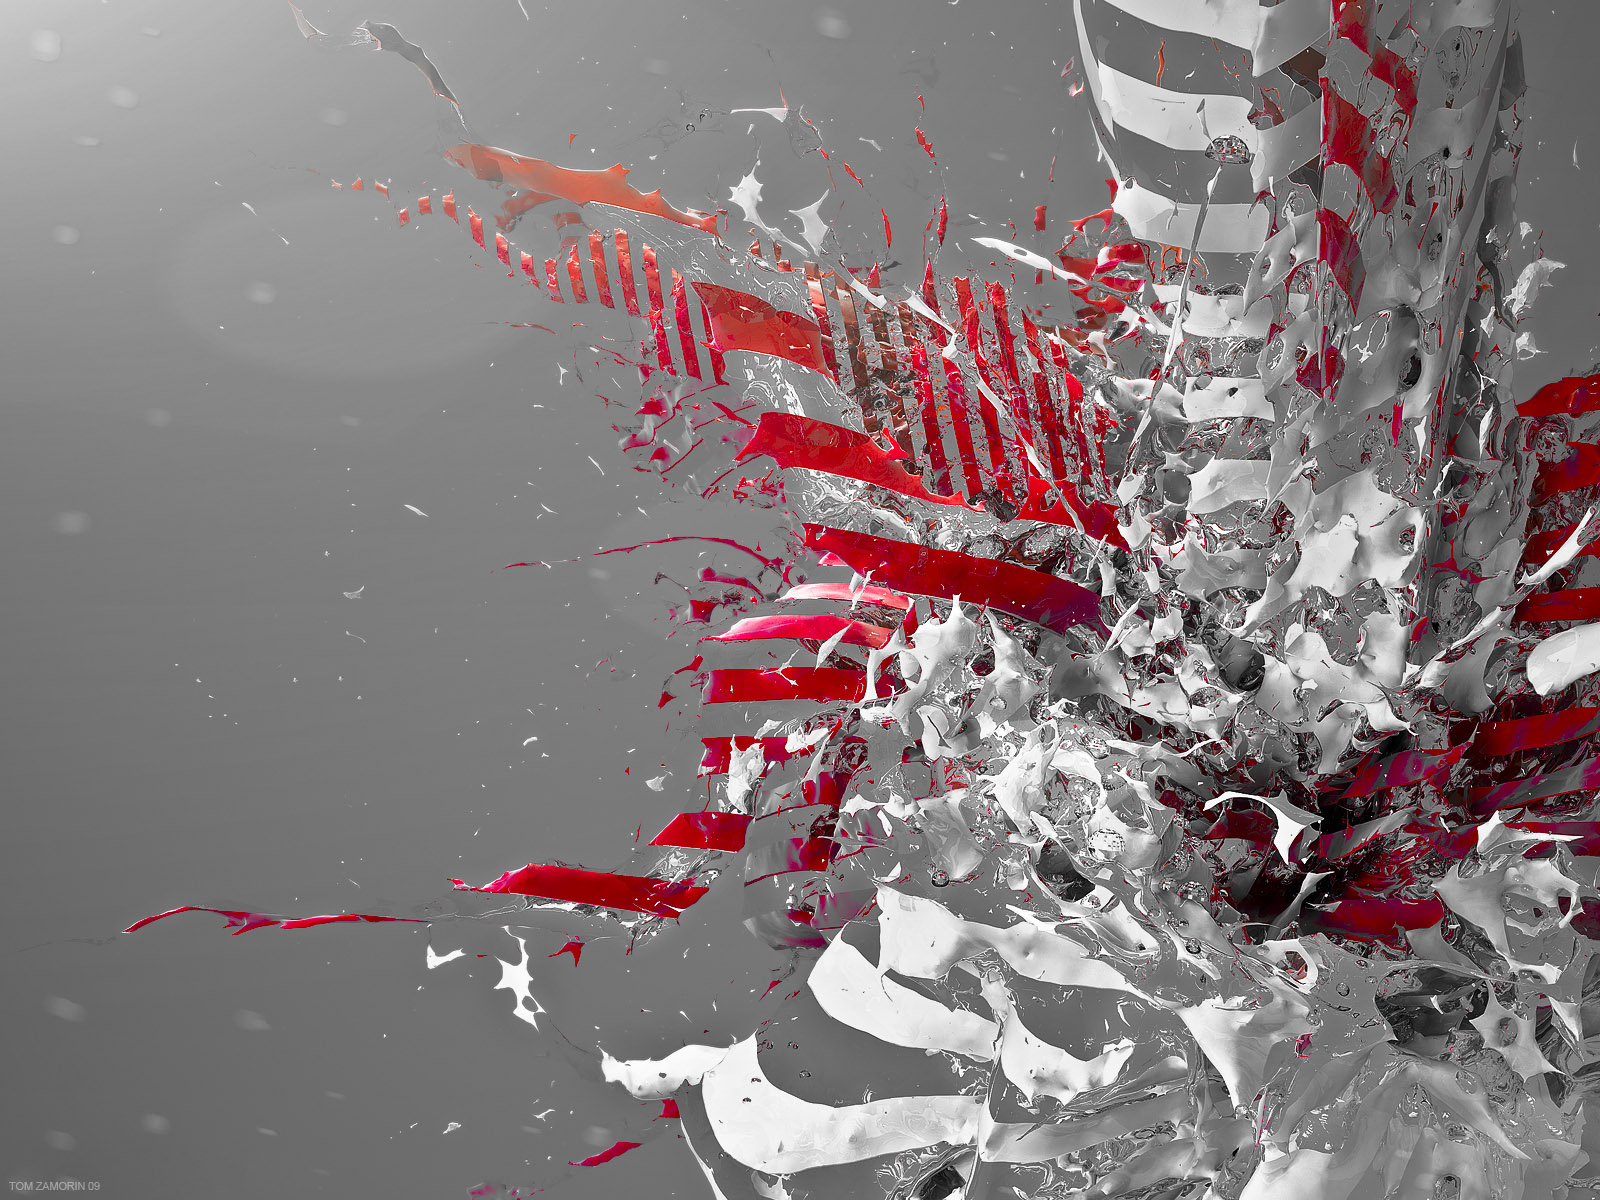 Most Creative Wallpapers 2012 | Desktop Wallpaper Collection